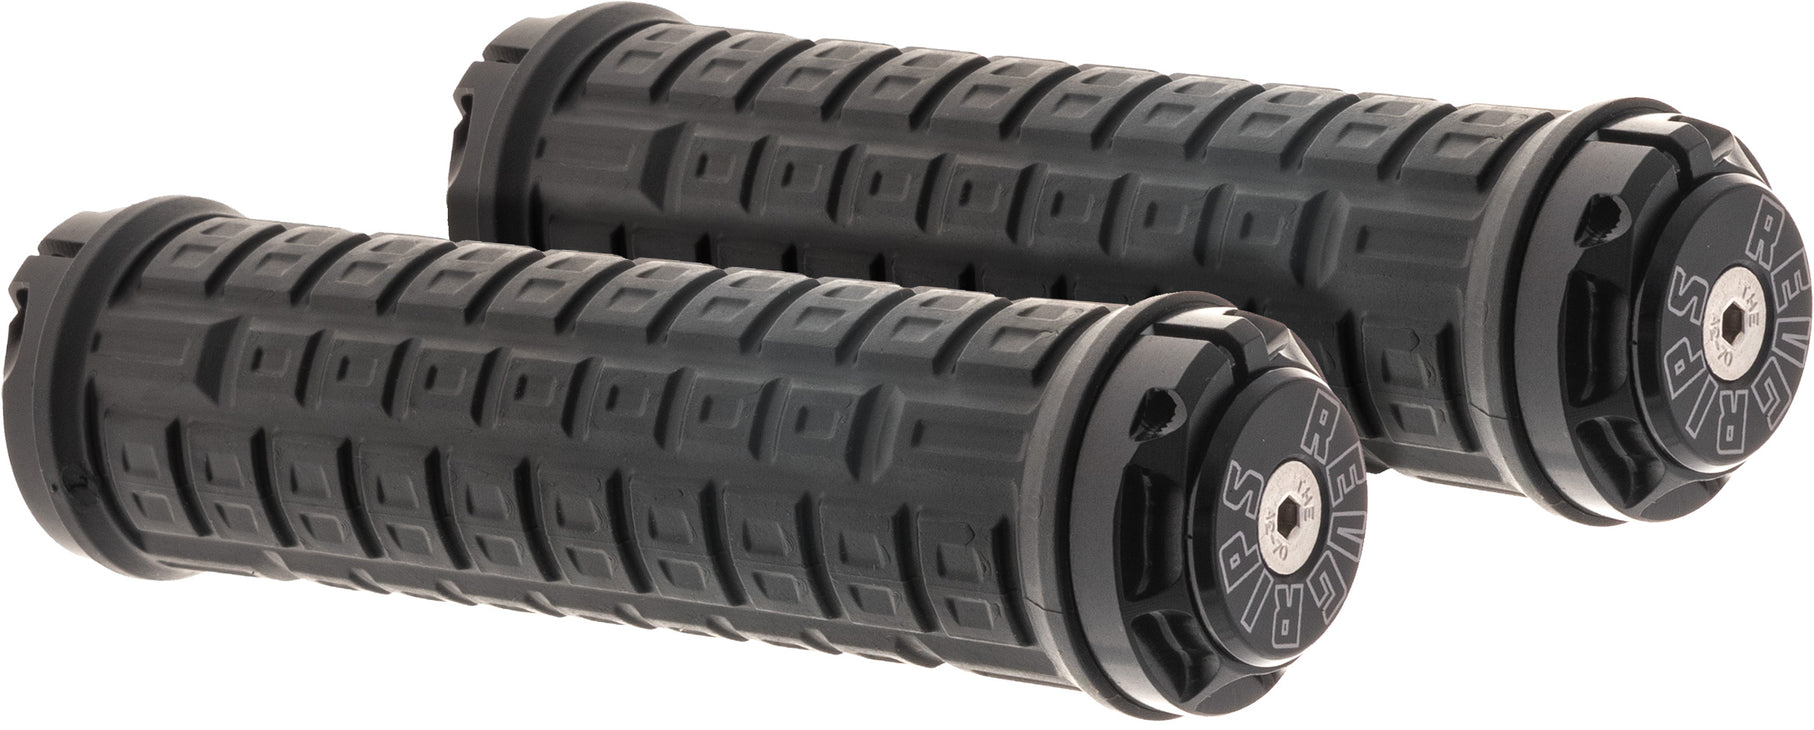 Pro Series Large (34mm) Grip System